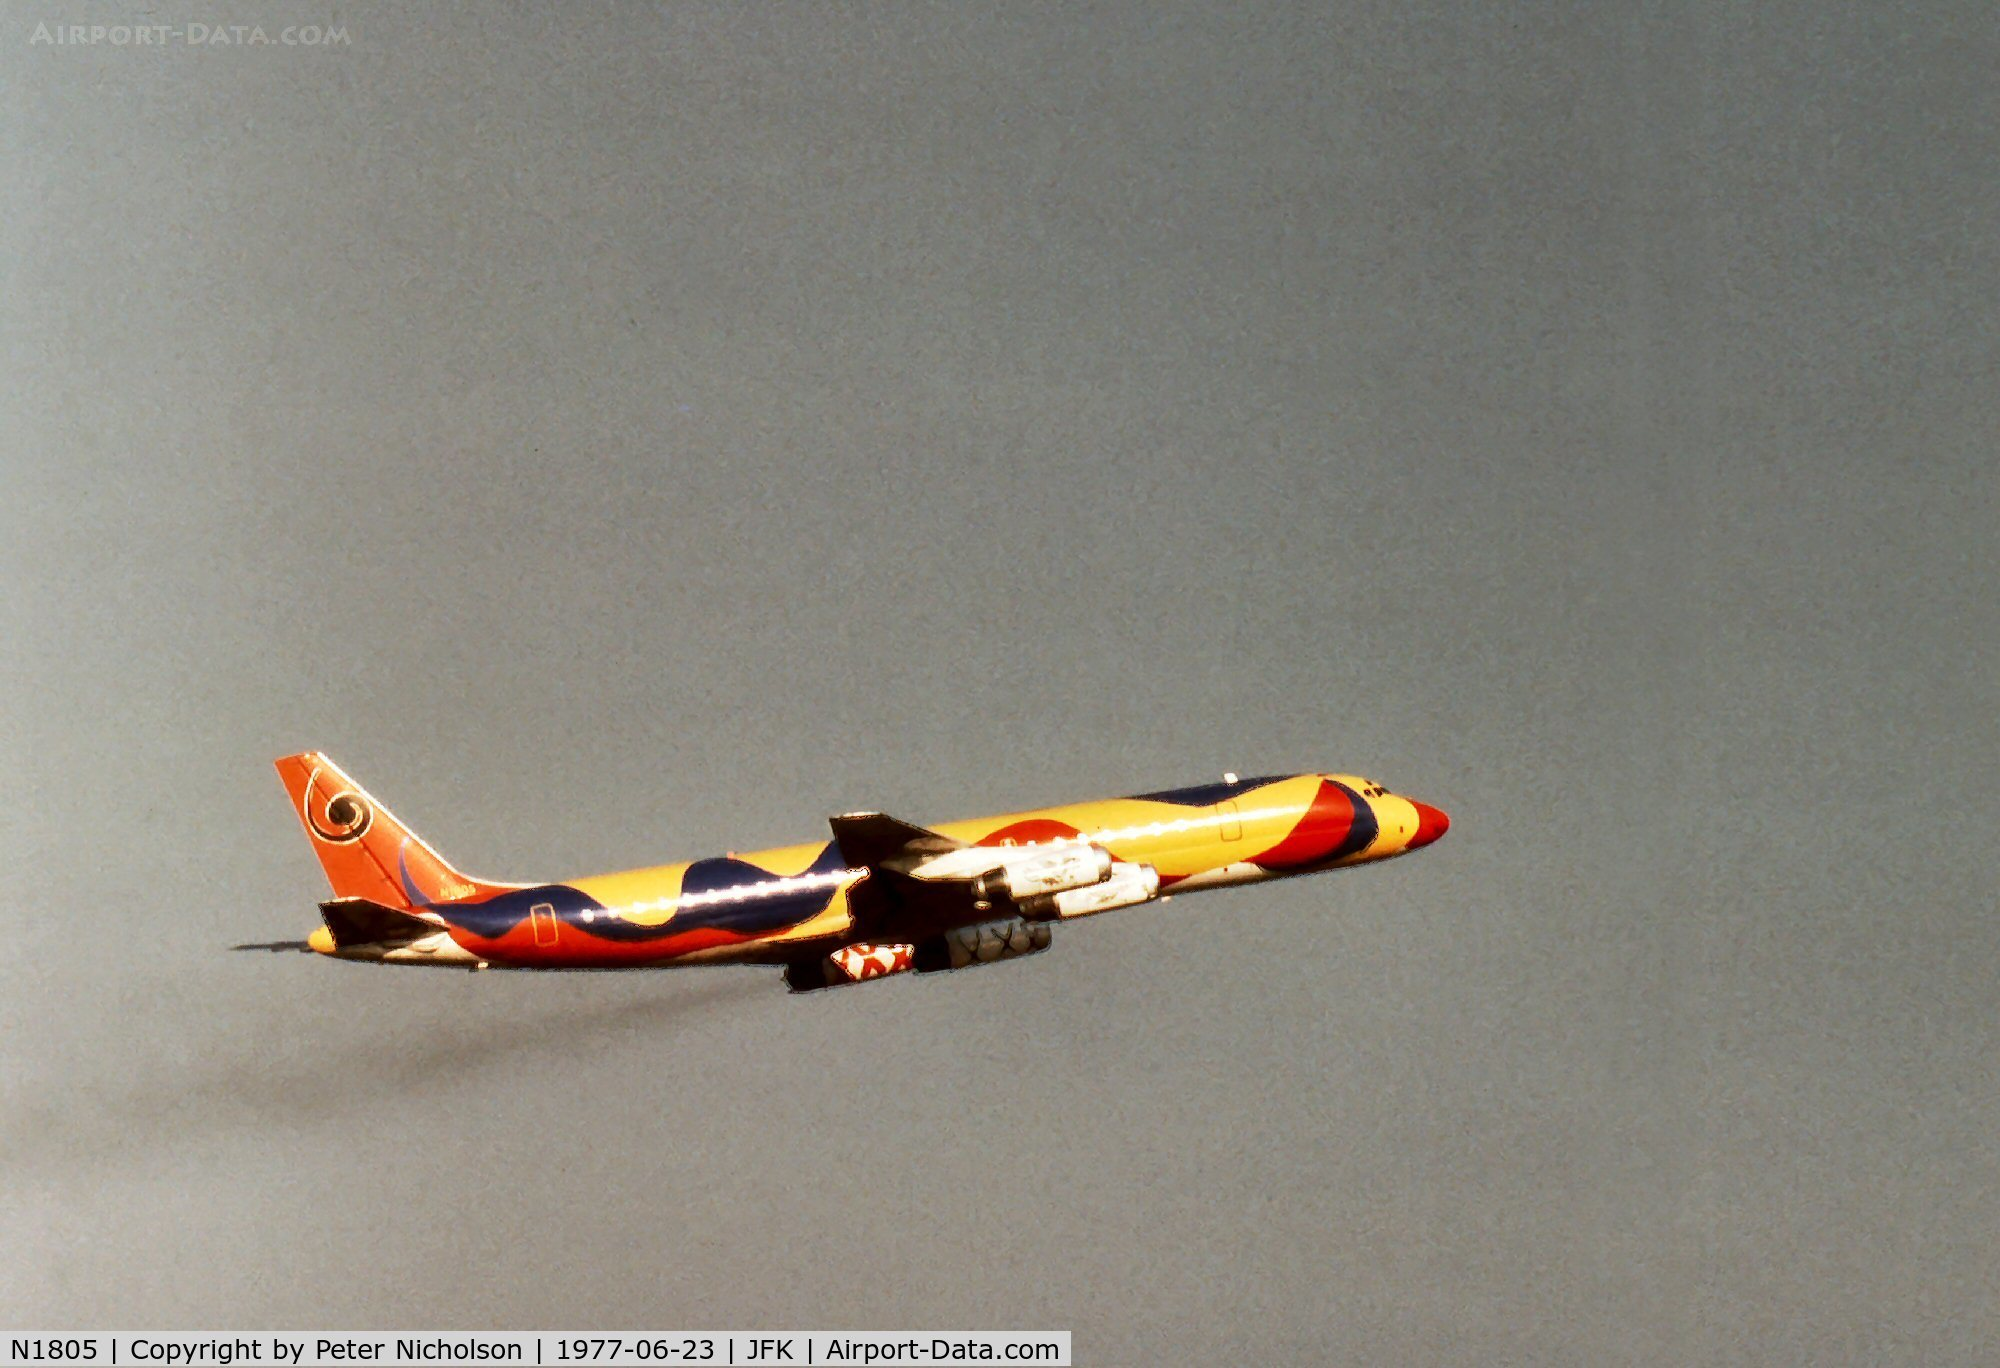 N1805, 1967 Douglas DC-8-62 C/N 45899, Flagship DC-8-62 of the South American fleet of Braniff International Airlines in the distinctive Calder colour scheme departing Kennedy in the Summer of 1977.